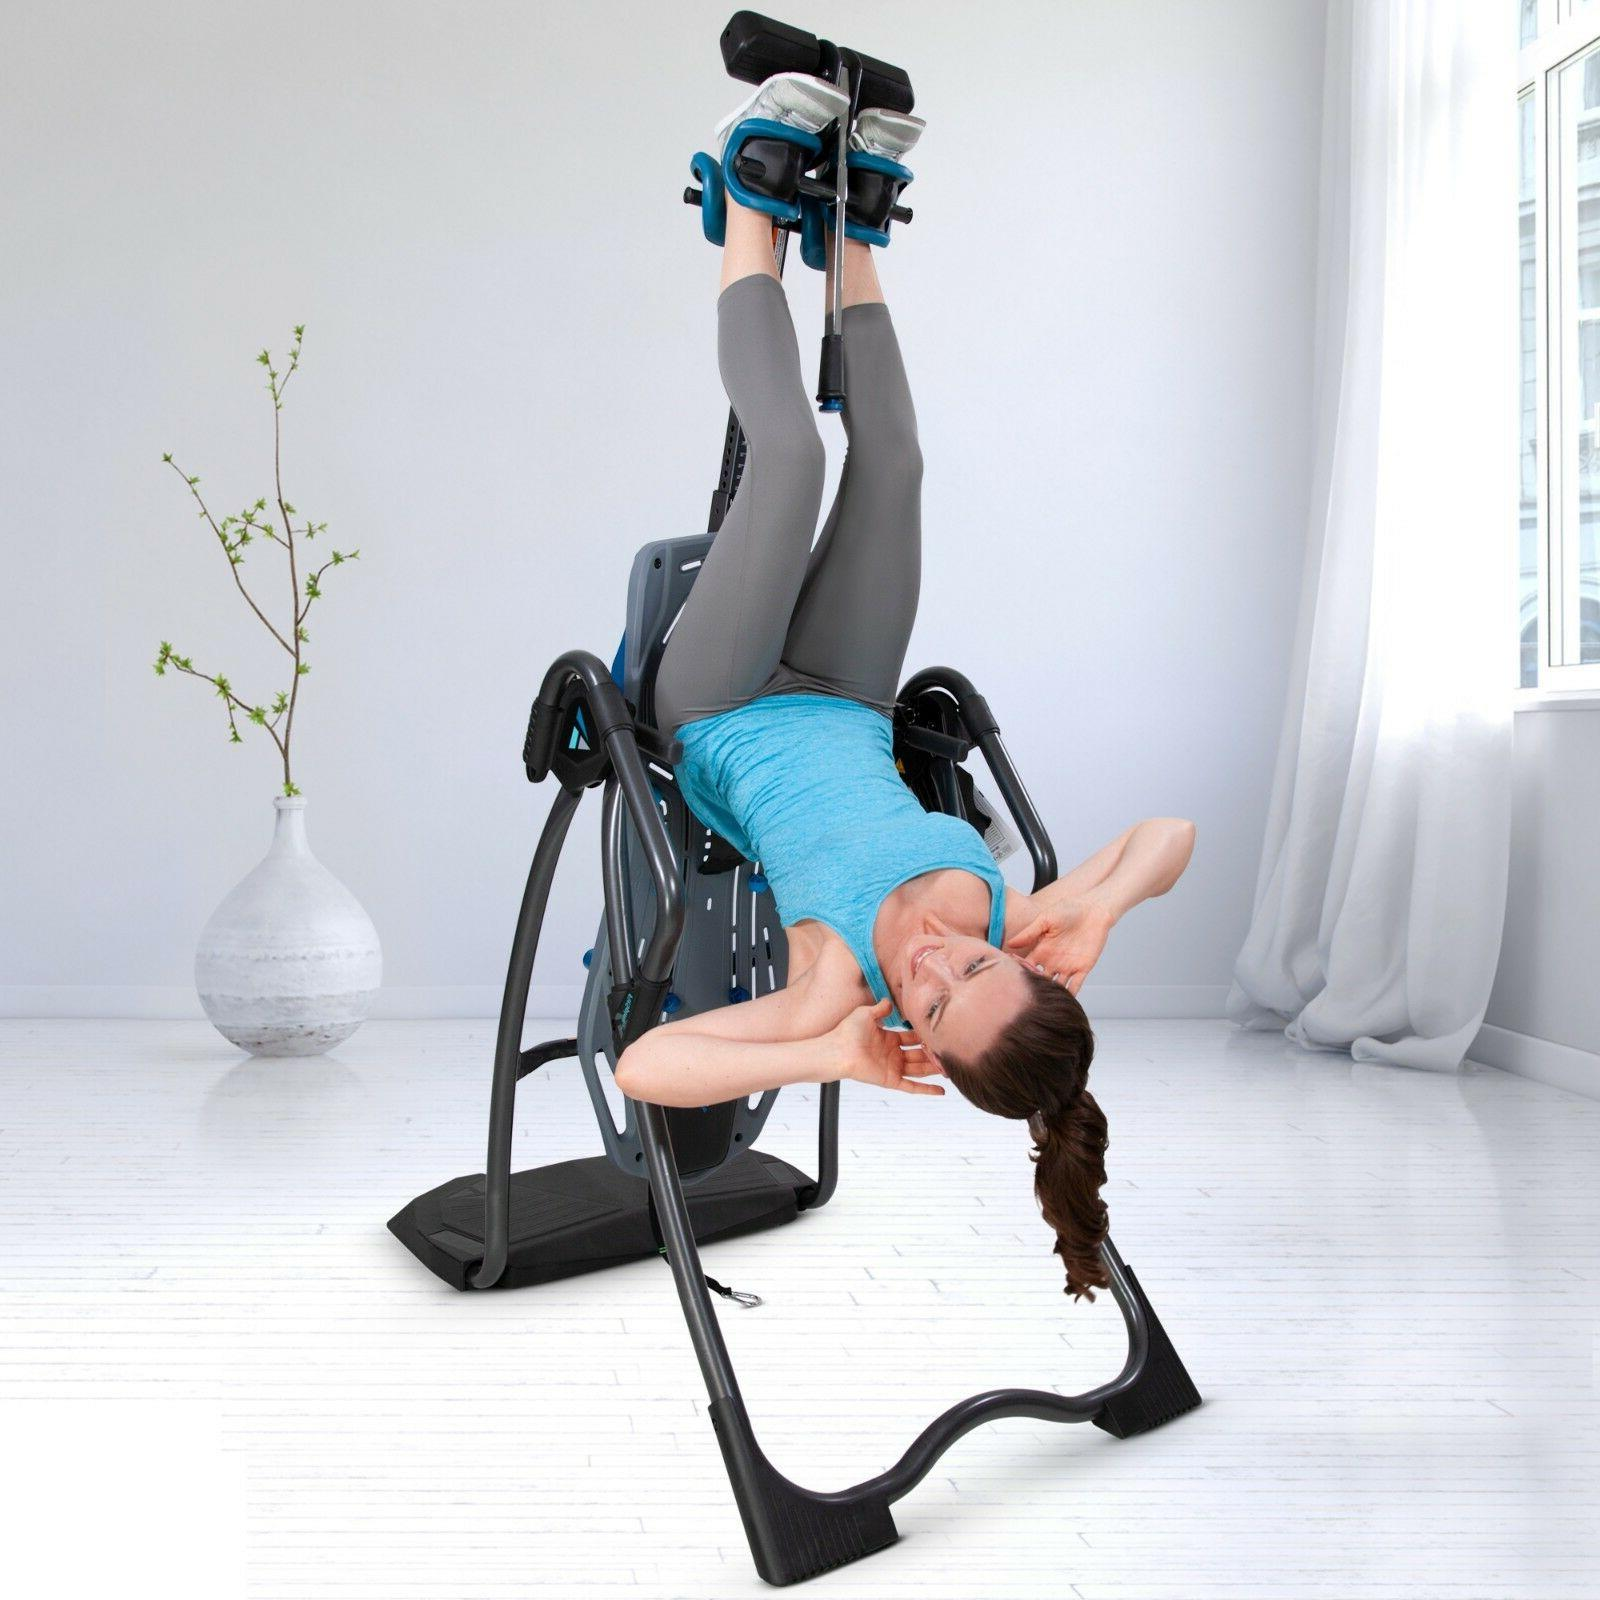 SALE!! FitSpine LX9 - Certified Refurb LX94 with Back Pain Relief